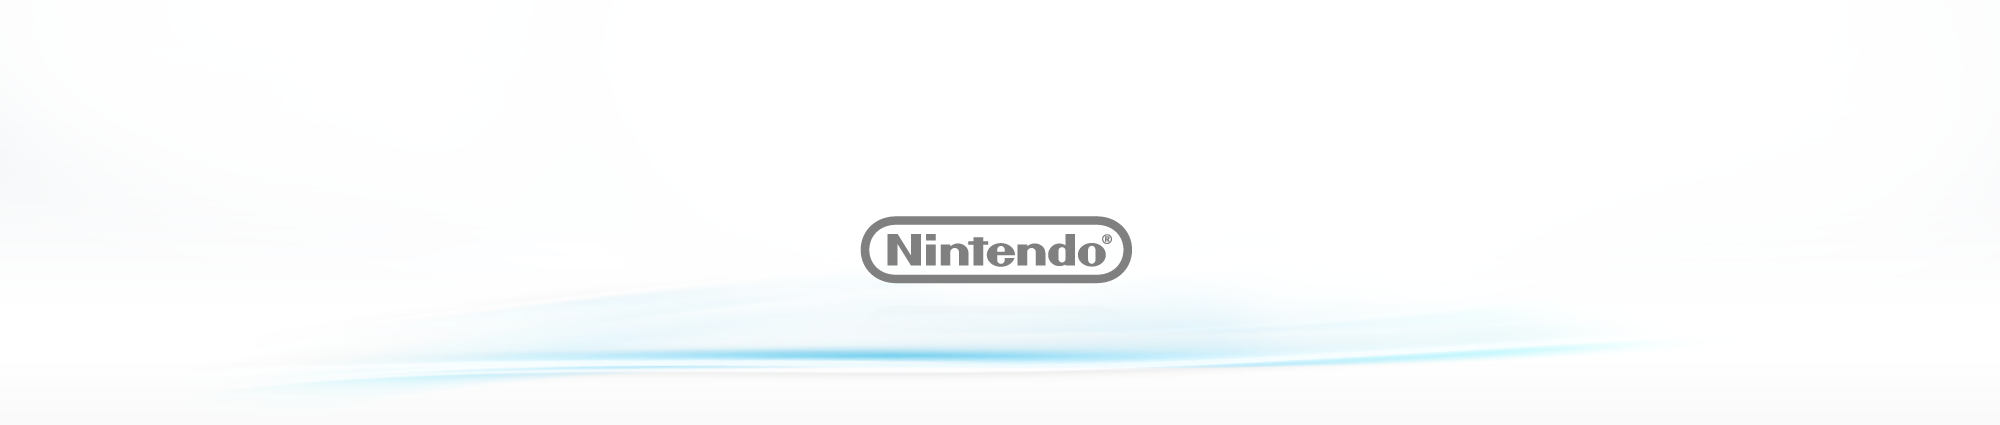 How many child accounts can be managed through a parent or guardian's Nintendo Account?